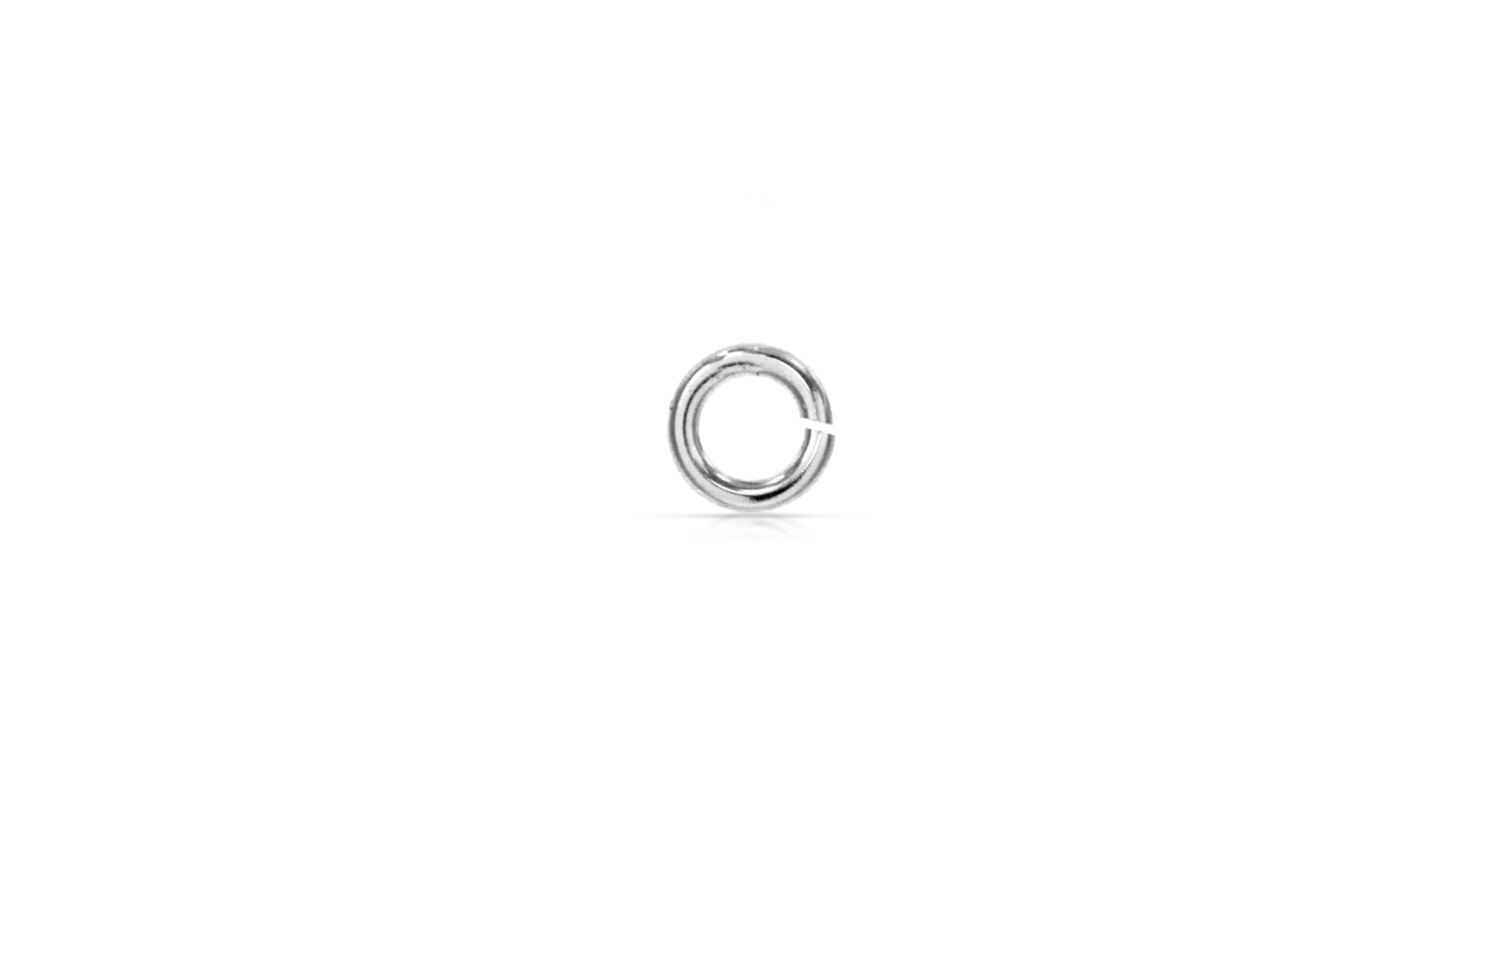 Primary image for Jump Rings, Twist and Lock, Sterling Silver, 20Gauge 4mm, Pkg Of 50pcs (8532)/1